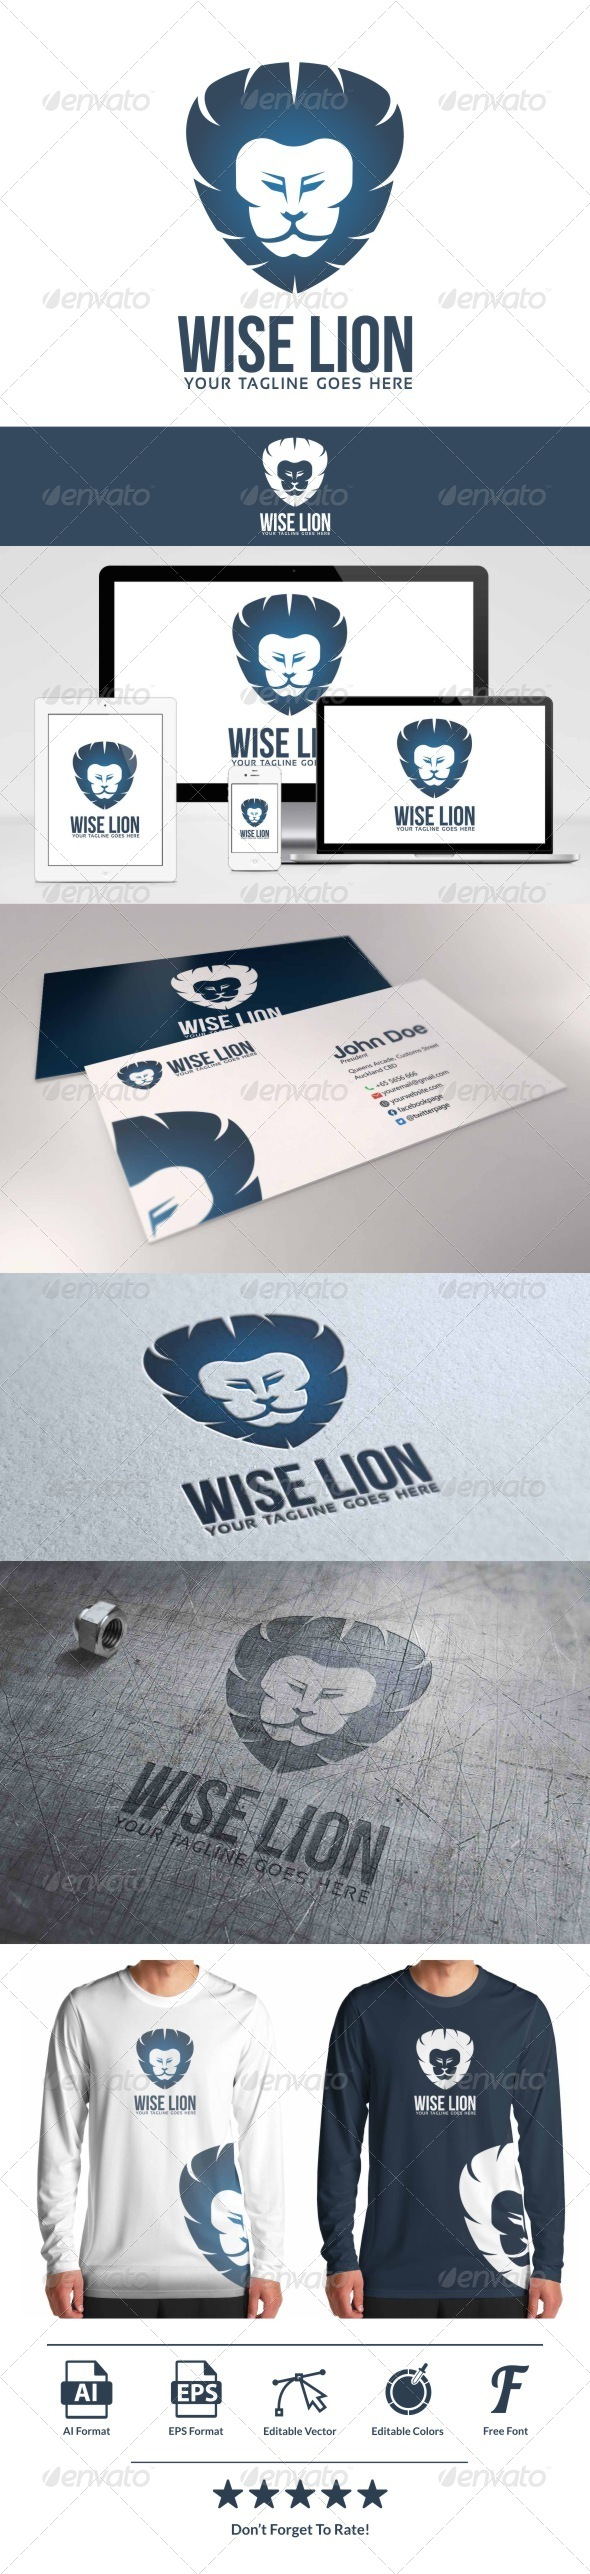 GraphicRiver Wise Lion Logo 8156496